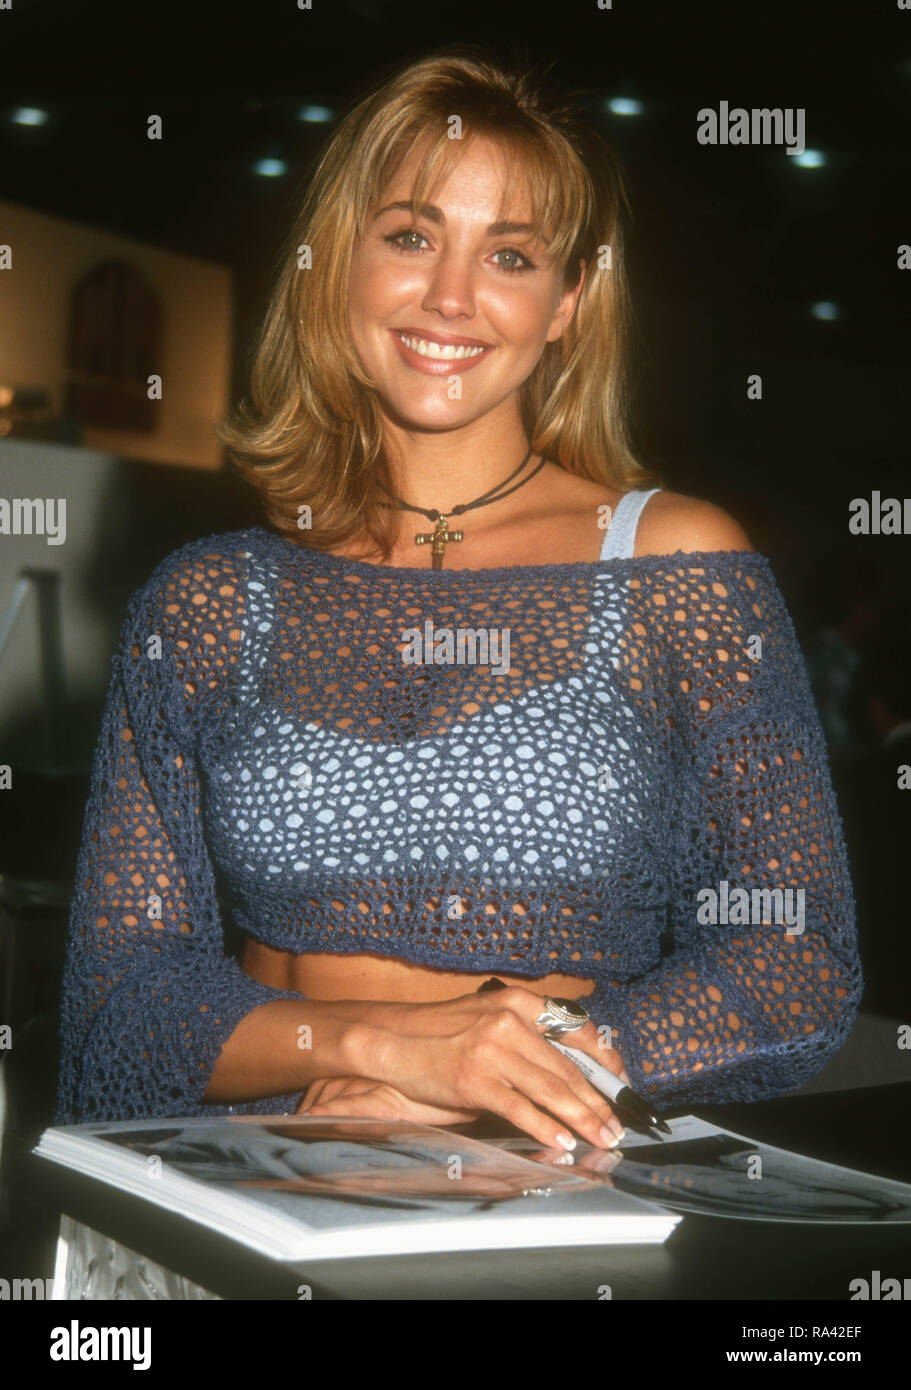 Communication on this topic: Molly Sims USA 	1 	2001, bobbie-phillips/